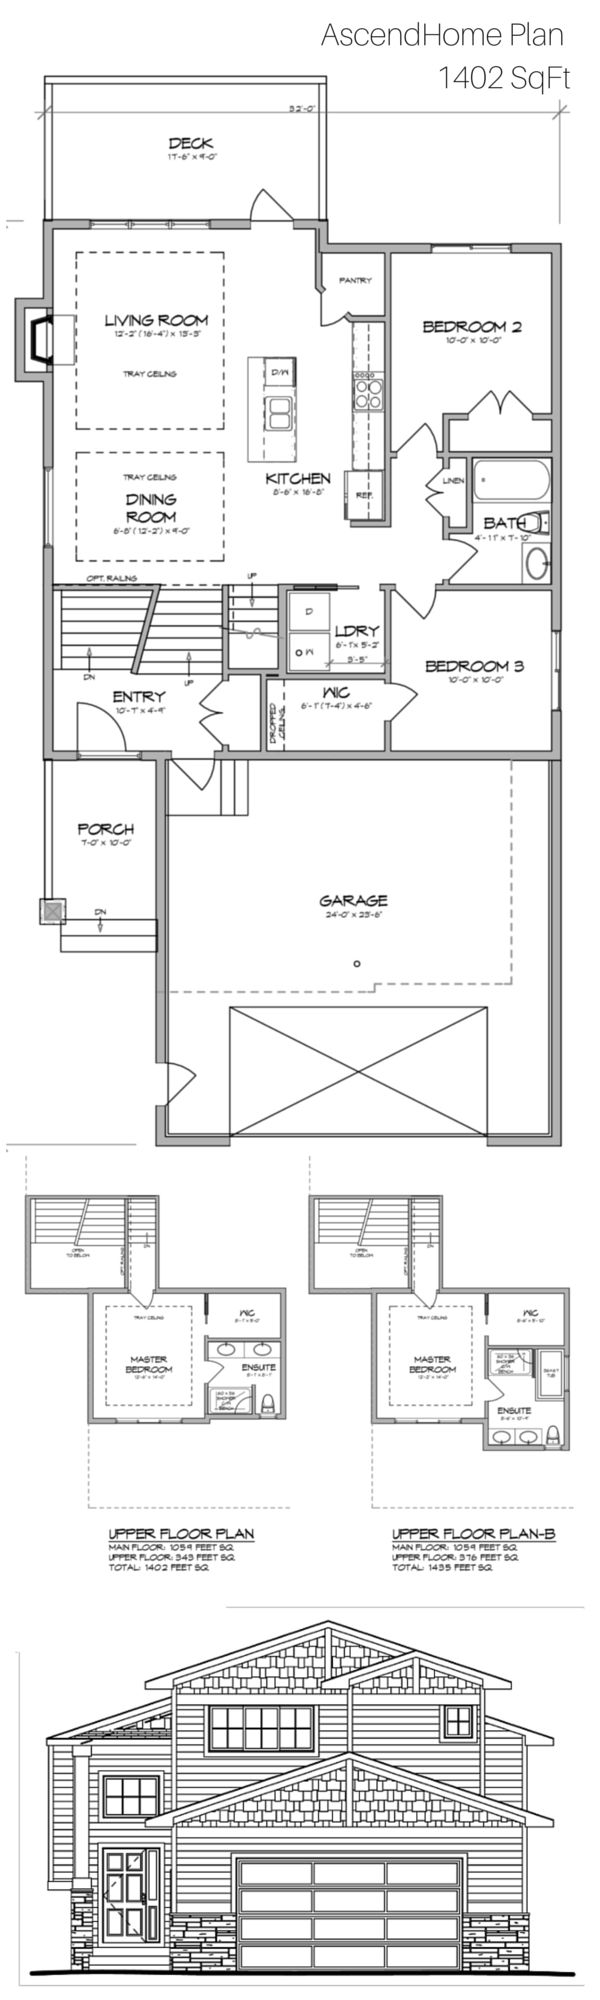 bi level floor plans 24 best house plans images on home plans 16388